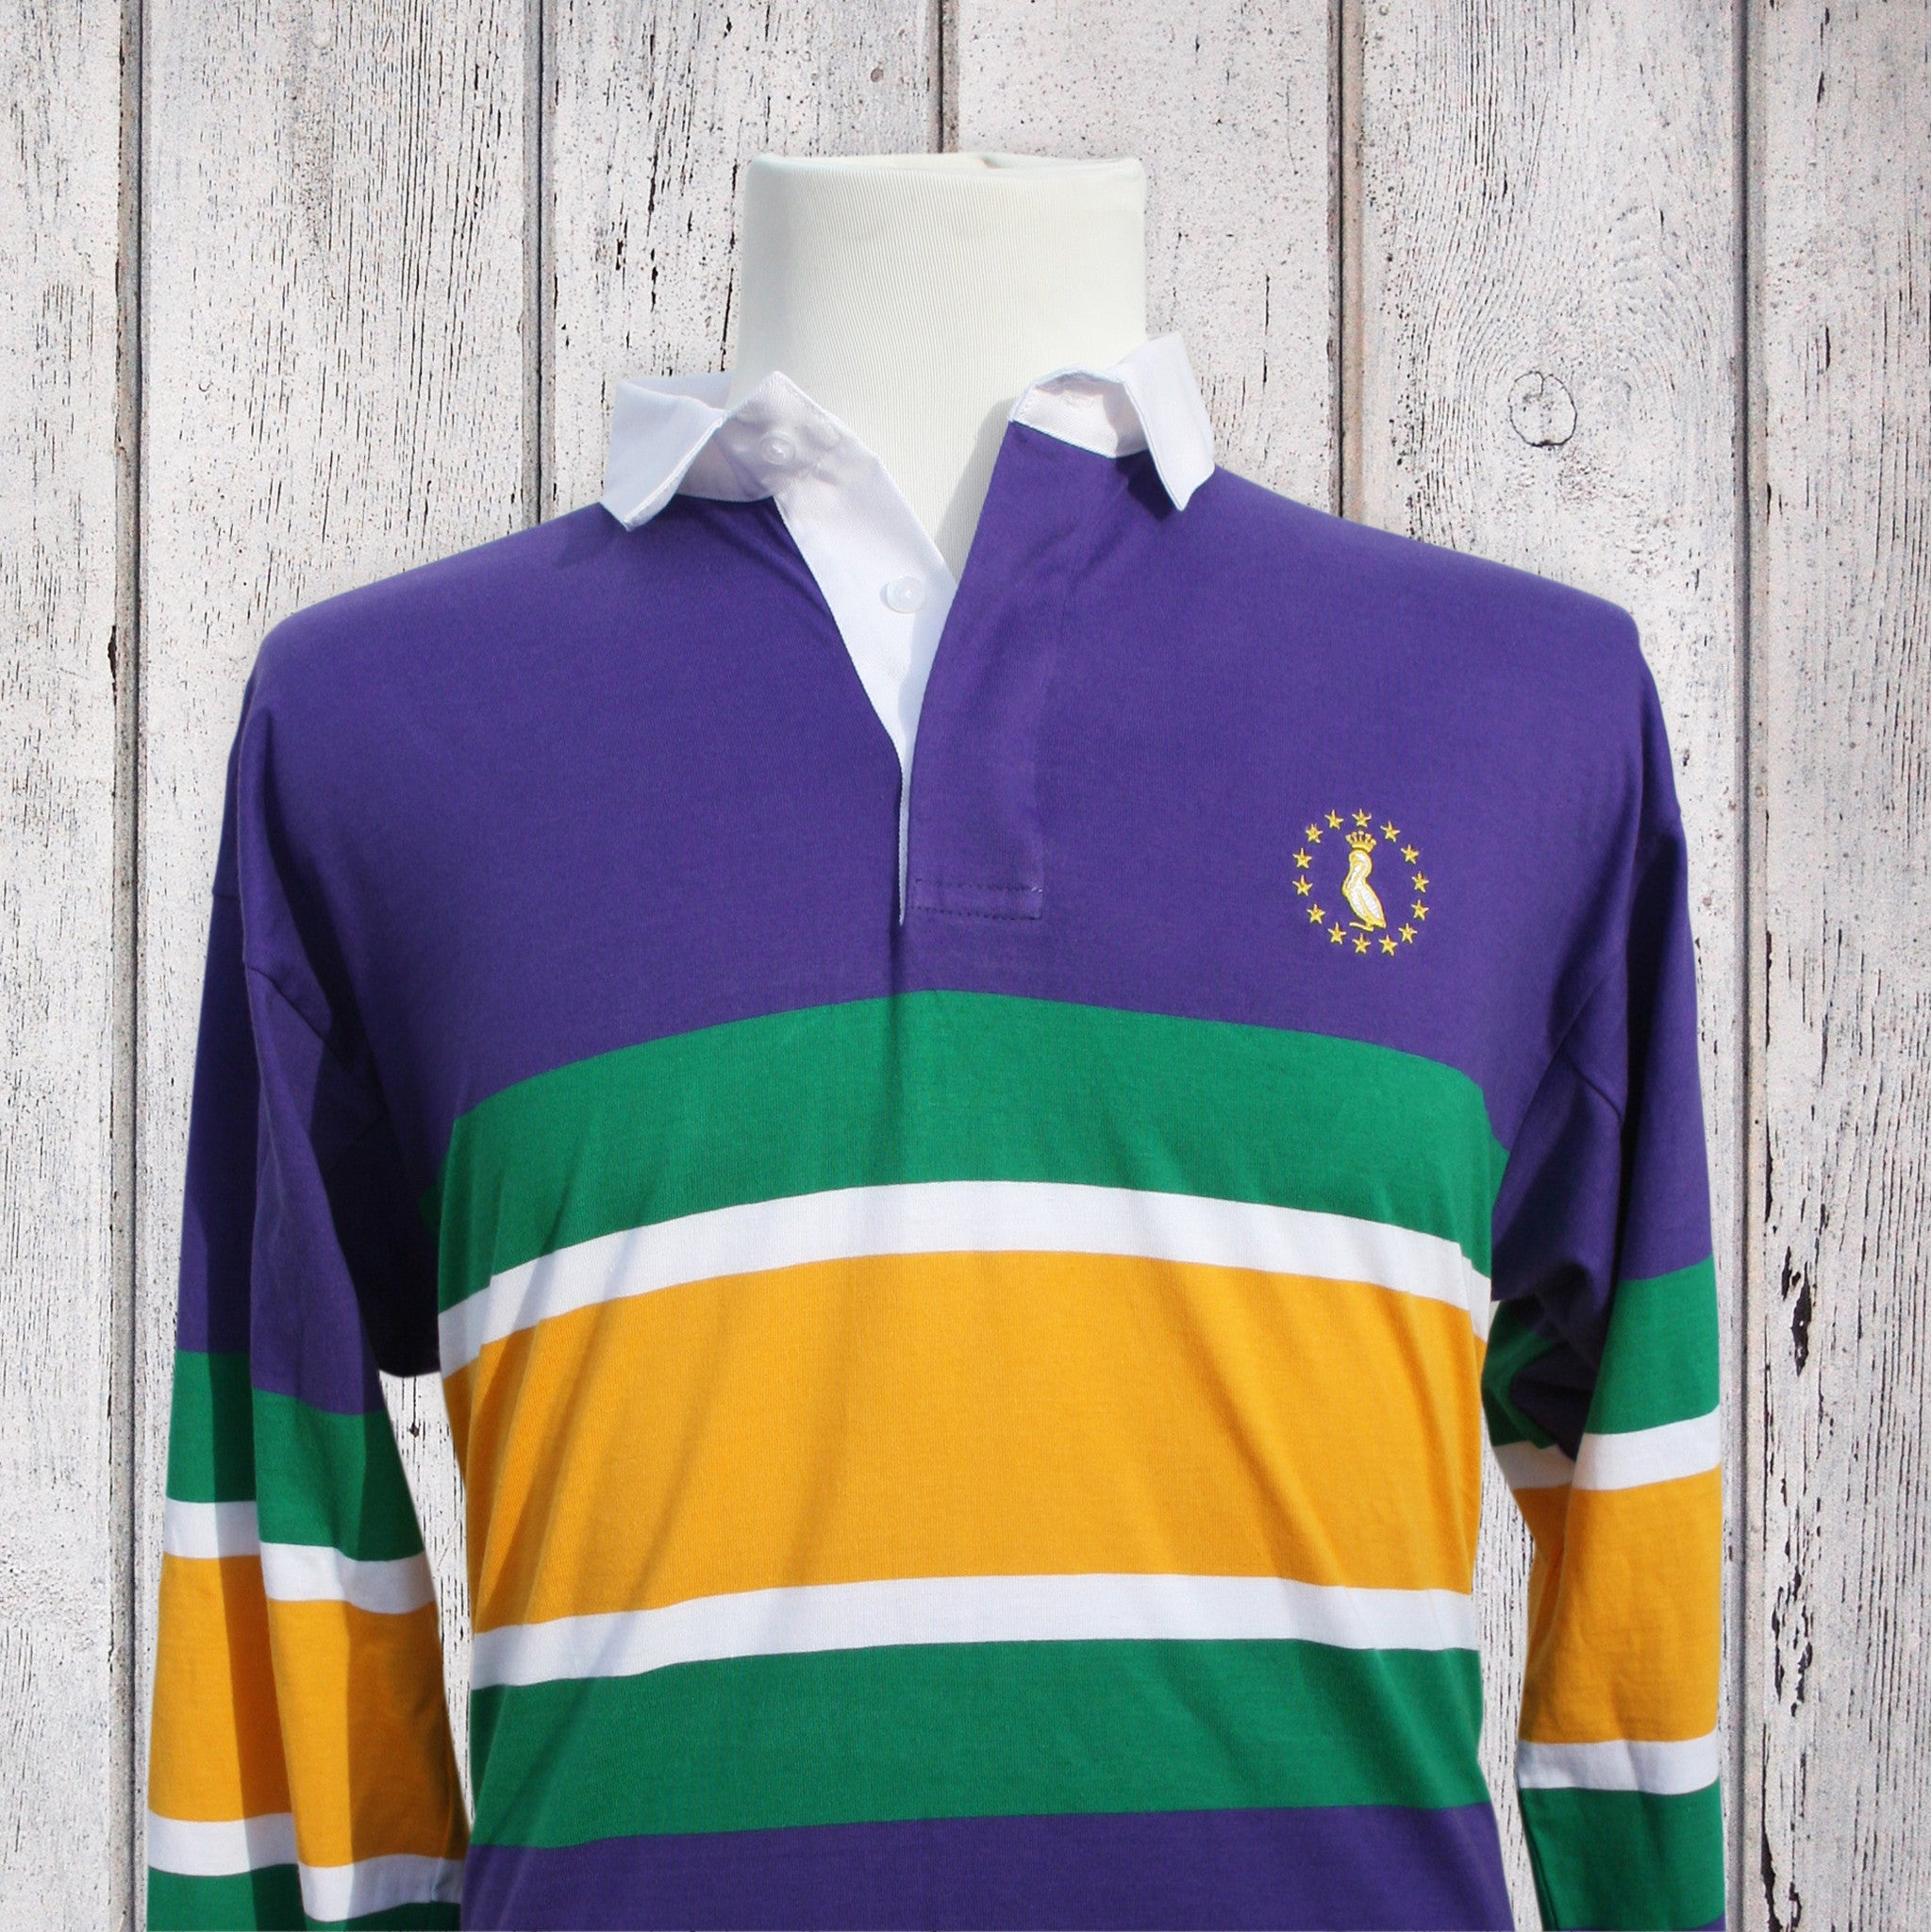 f43cb60303f Mardi Gras Rugby Shirt - Purple With MG Stripes - Pelican Coast Clothing